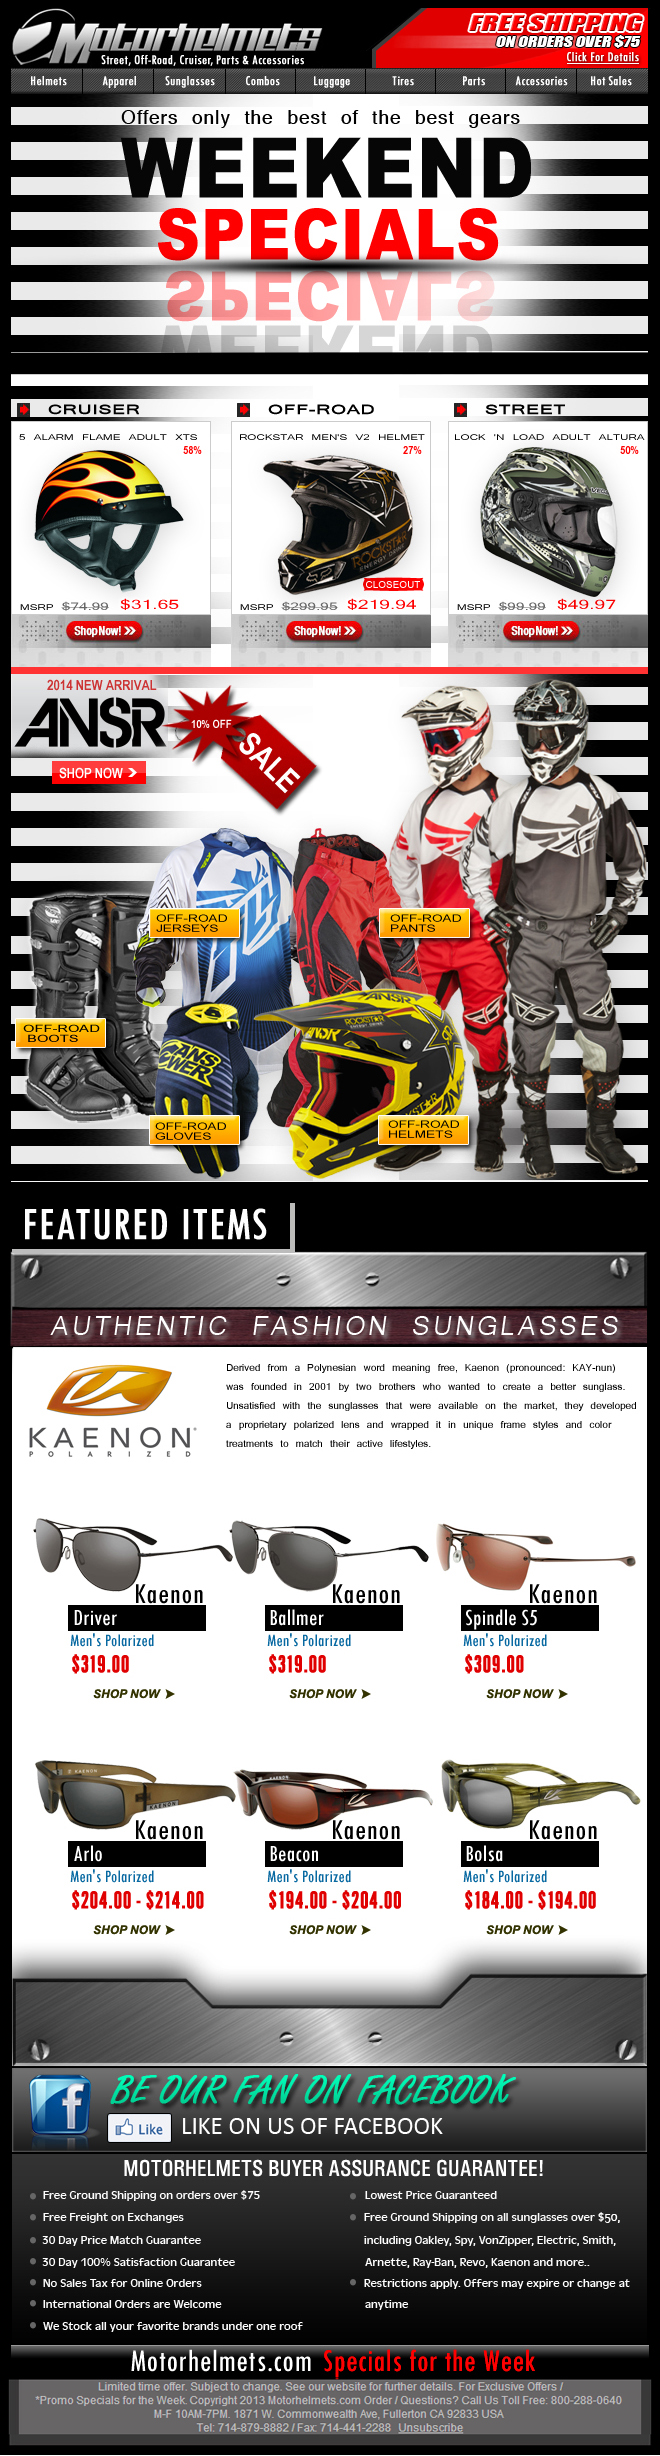 Gear-Fever...Closeout Helmets from FOX & Vega + New Arrivals from Answer!